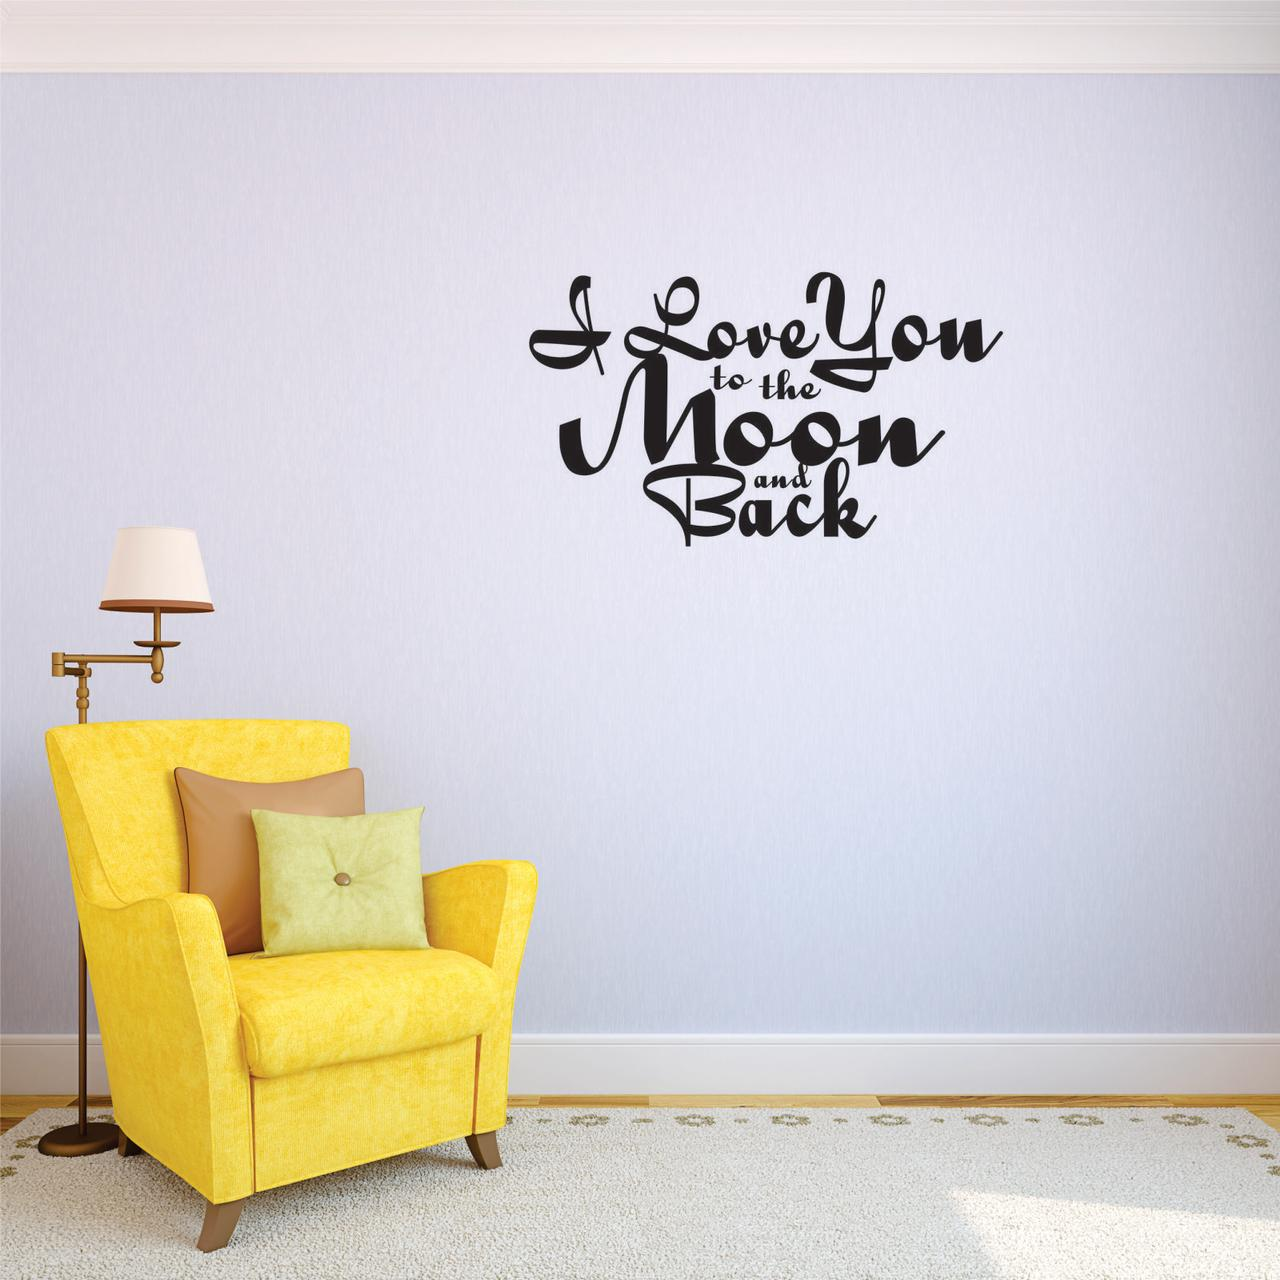 Custom Decals I Love You To The Moon And Back Wall Art Size: 10 Inches x 20 Inches Color: Black